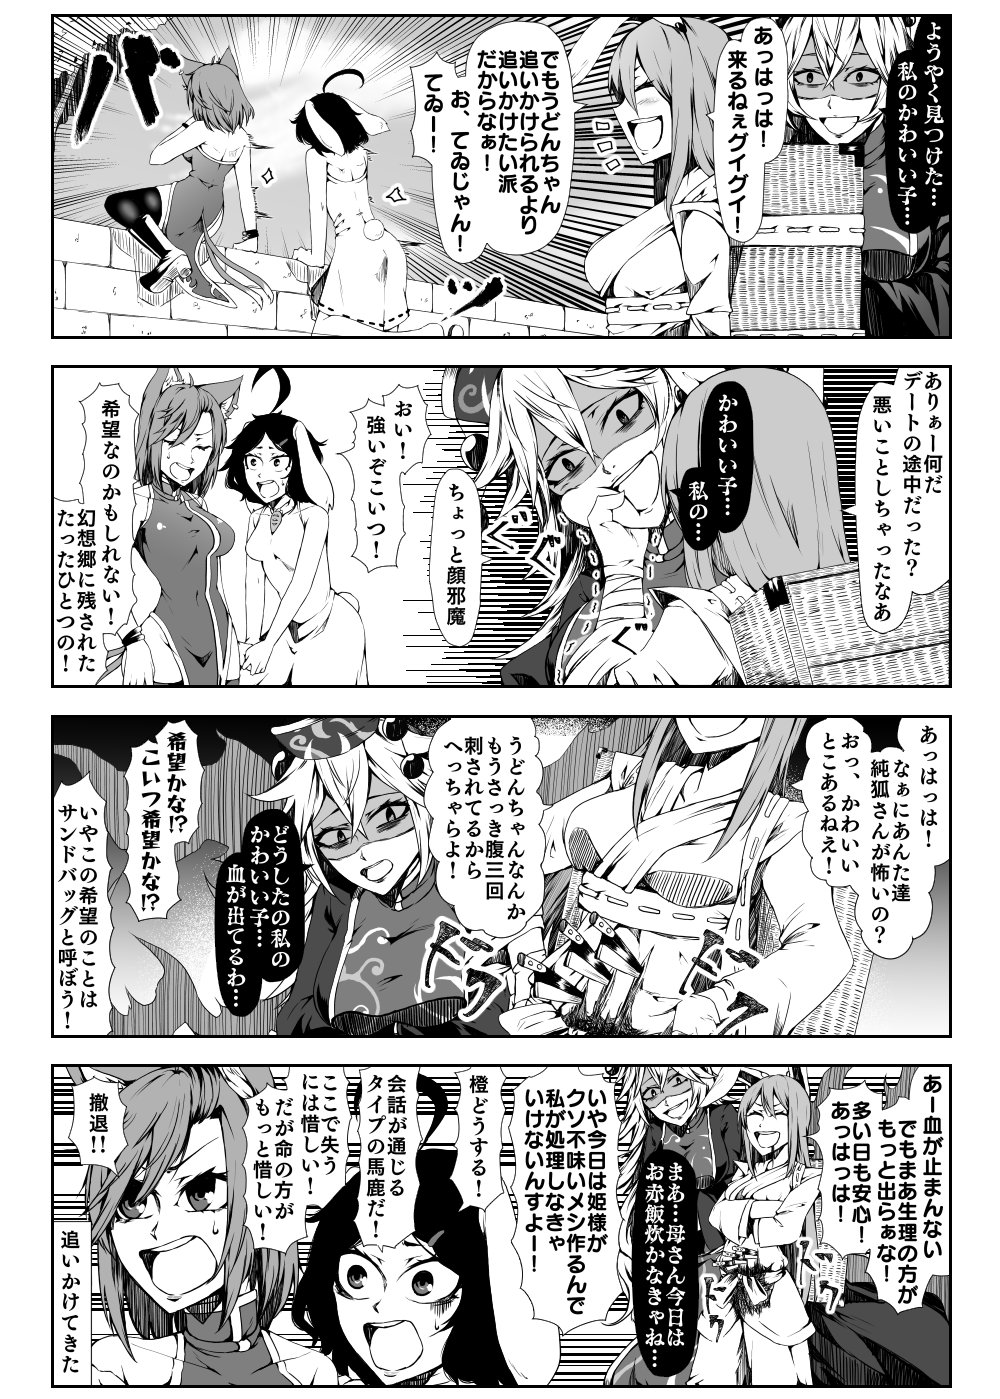 4girls 4koma adapted_costume ahoge animal_ears bare_shoulders blood boots bracelet breasts bunny_tail carrot_necklace cat_ears cat_tail cheek_pull chen closed_eyes comic emphasis_lines enami_hakase headdress highres inaba_tewi jewelry junko_(touhou) knife large_breasts long_hair monochrome multiple_girls multiple_tails open_mouth rabbit_ears reisen_udongein_inaba shaded_face short_hair single_earring tail thigh-highs touhou translation_request wall